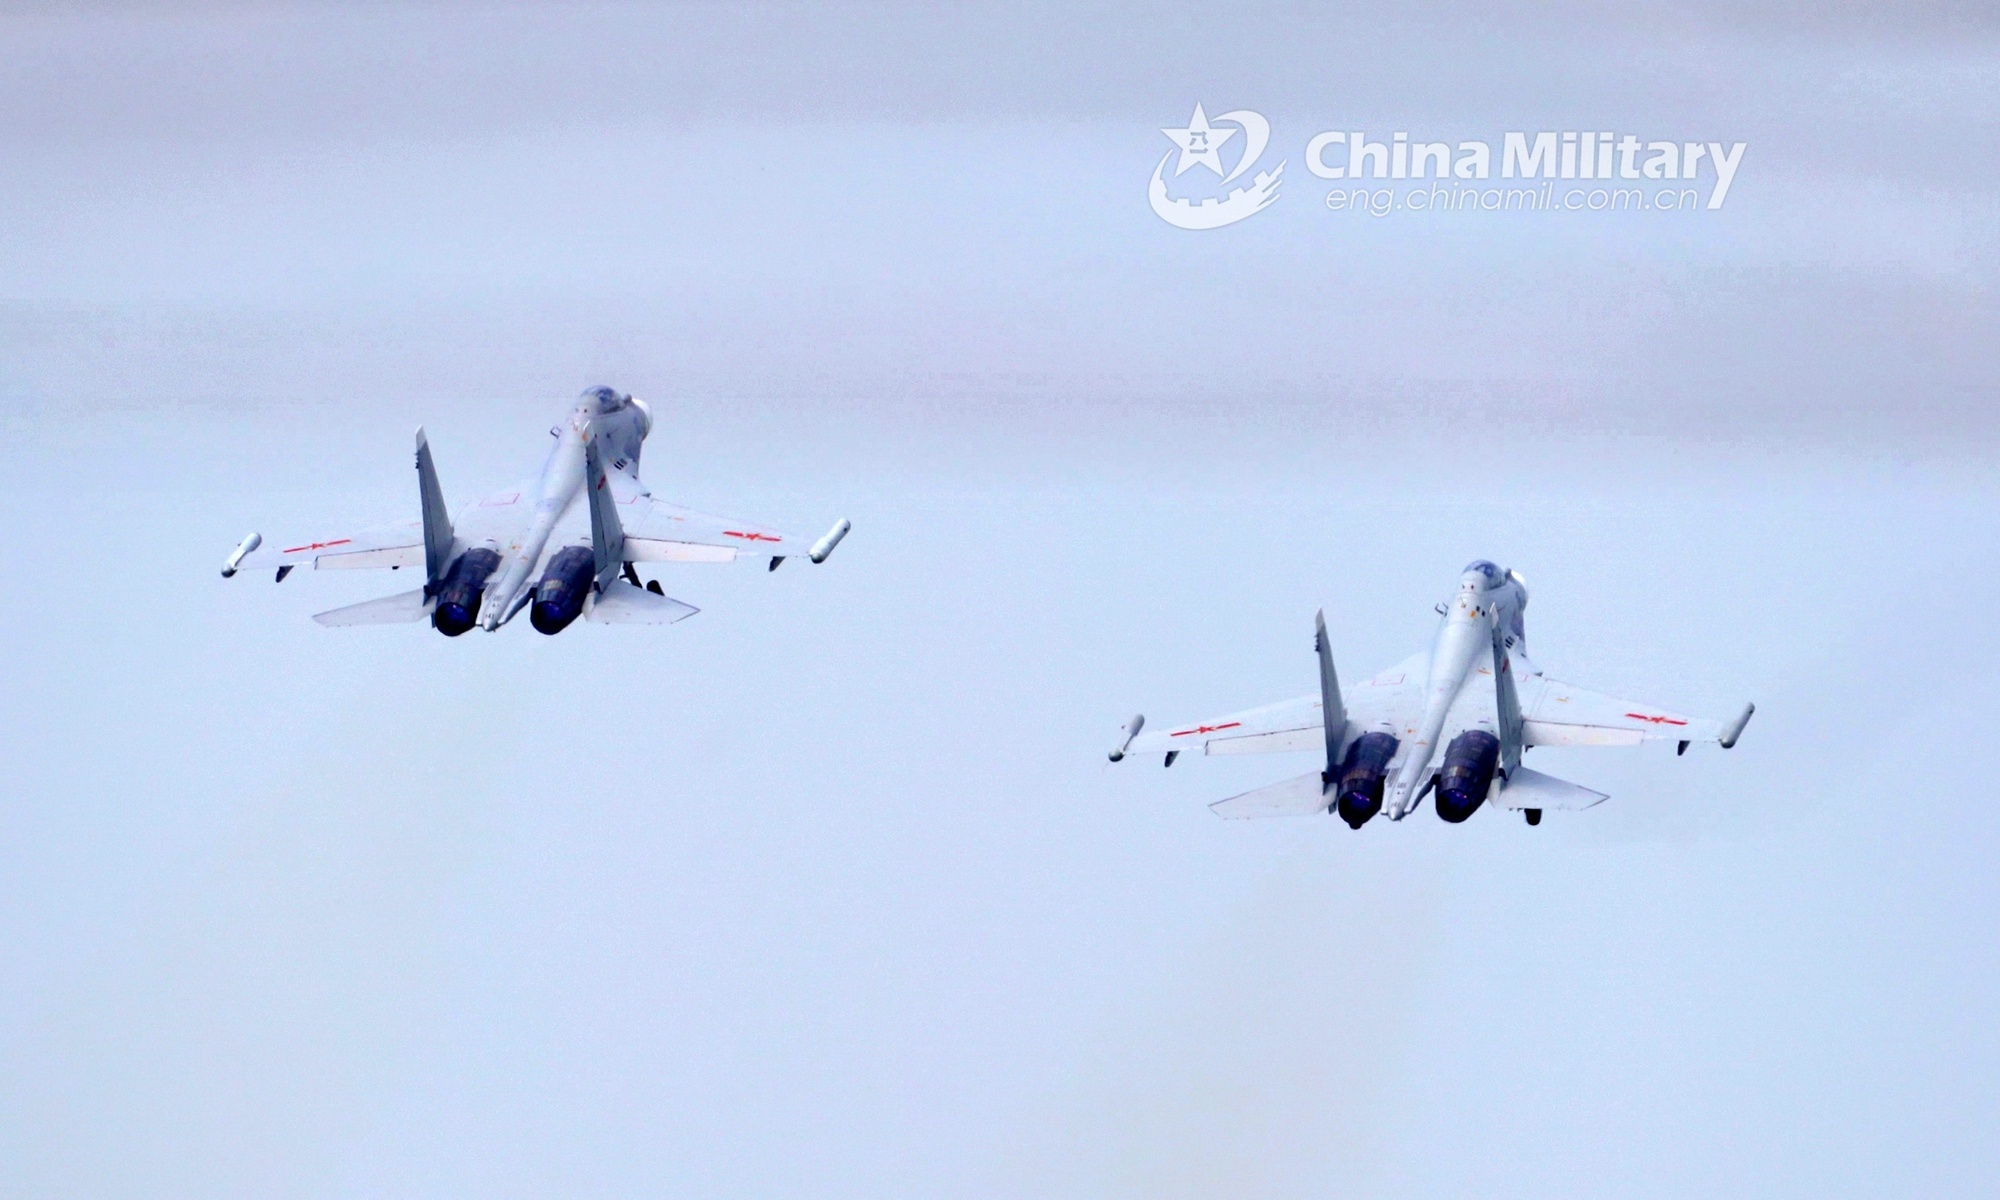 Military analysts predict PLA maneuvers in potential Taiwan takeover